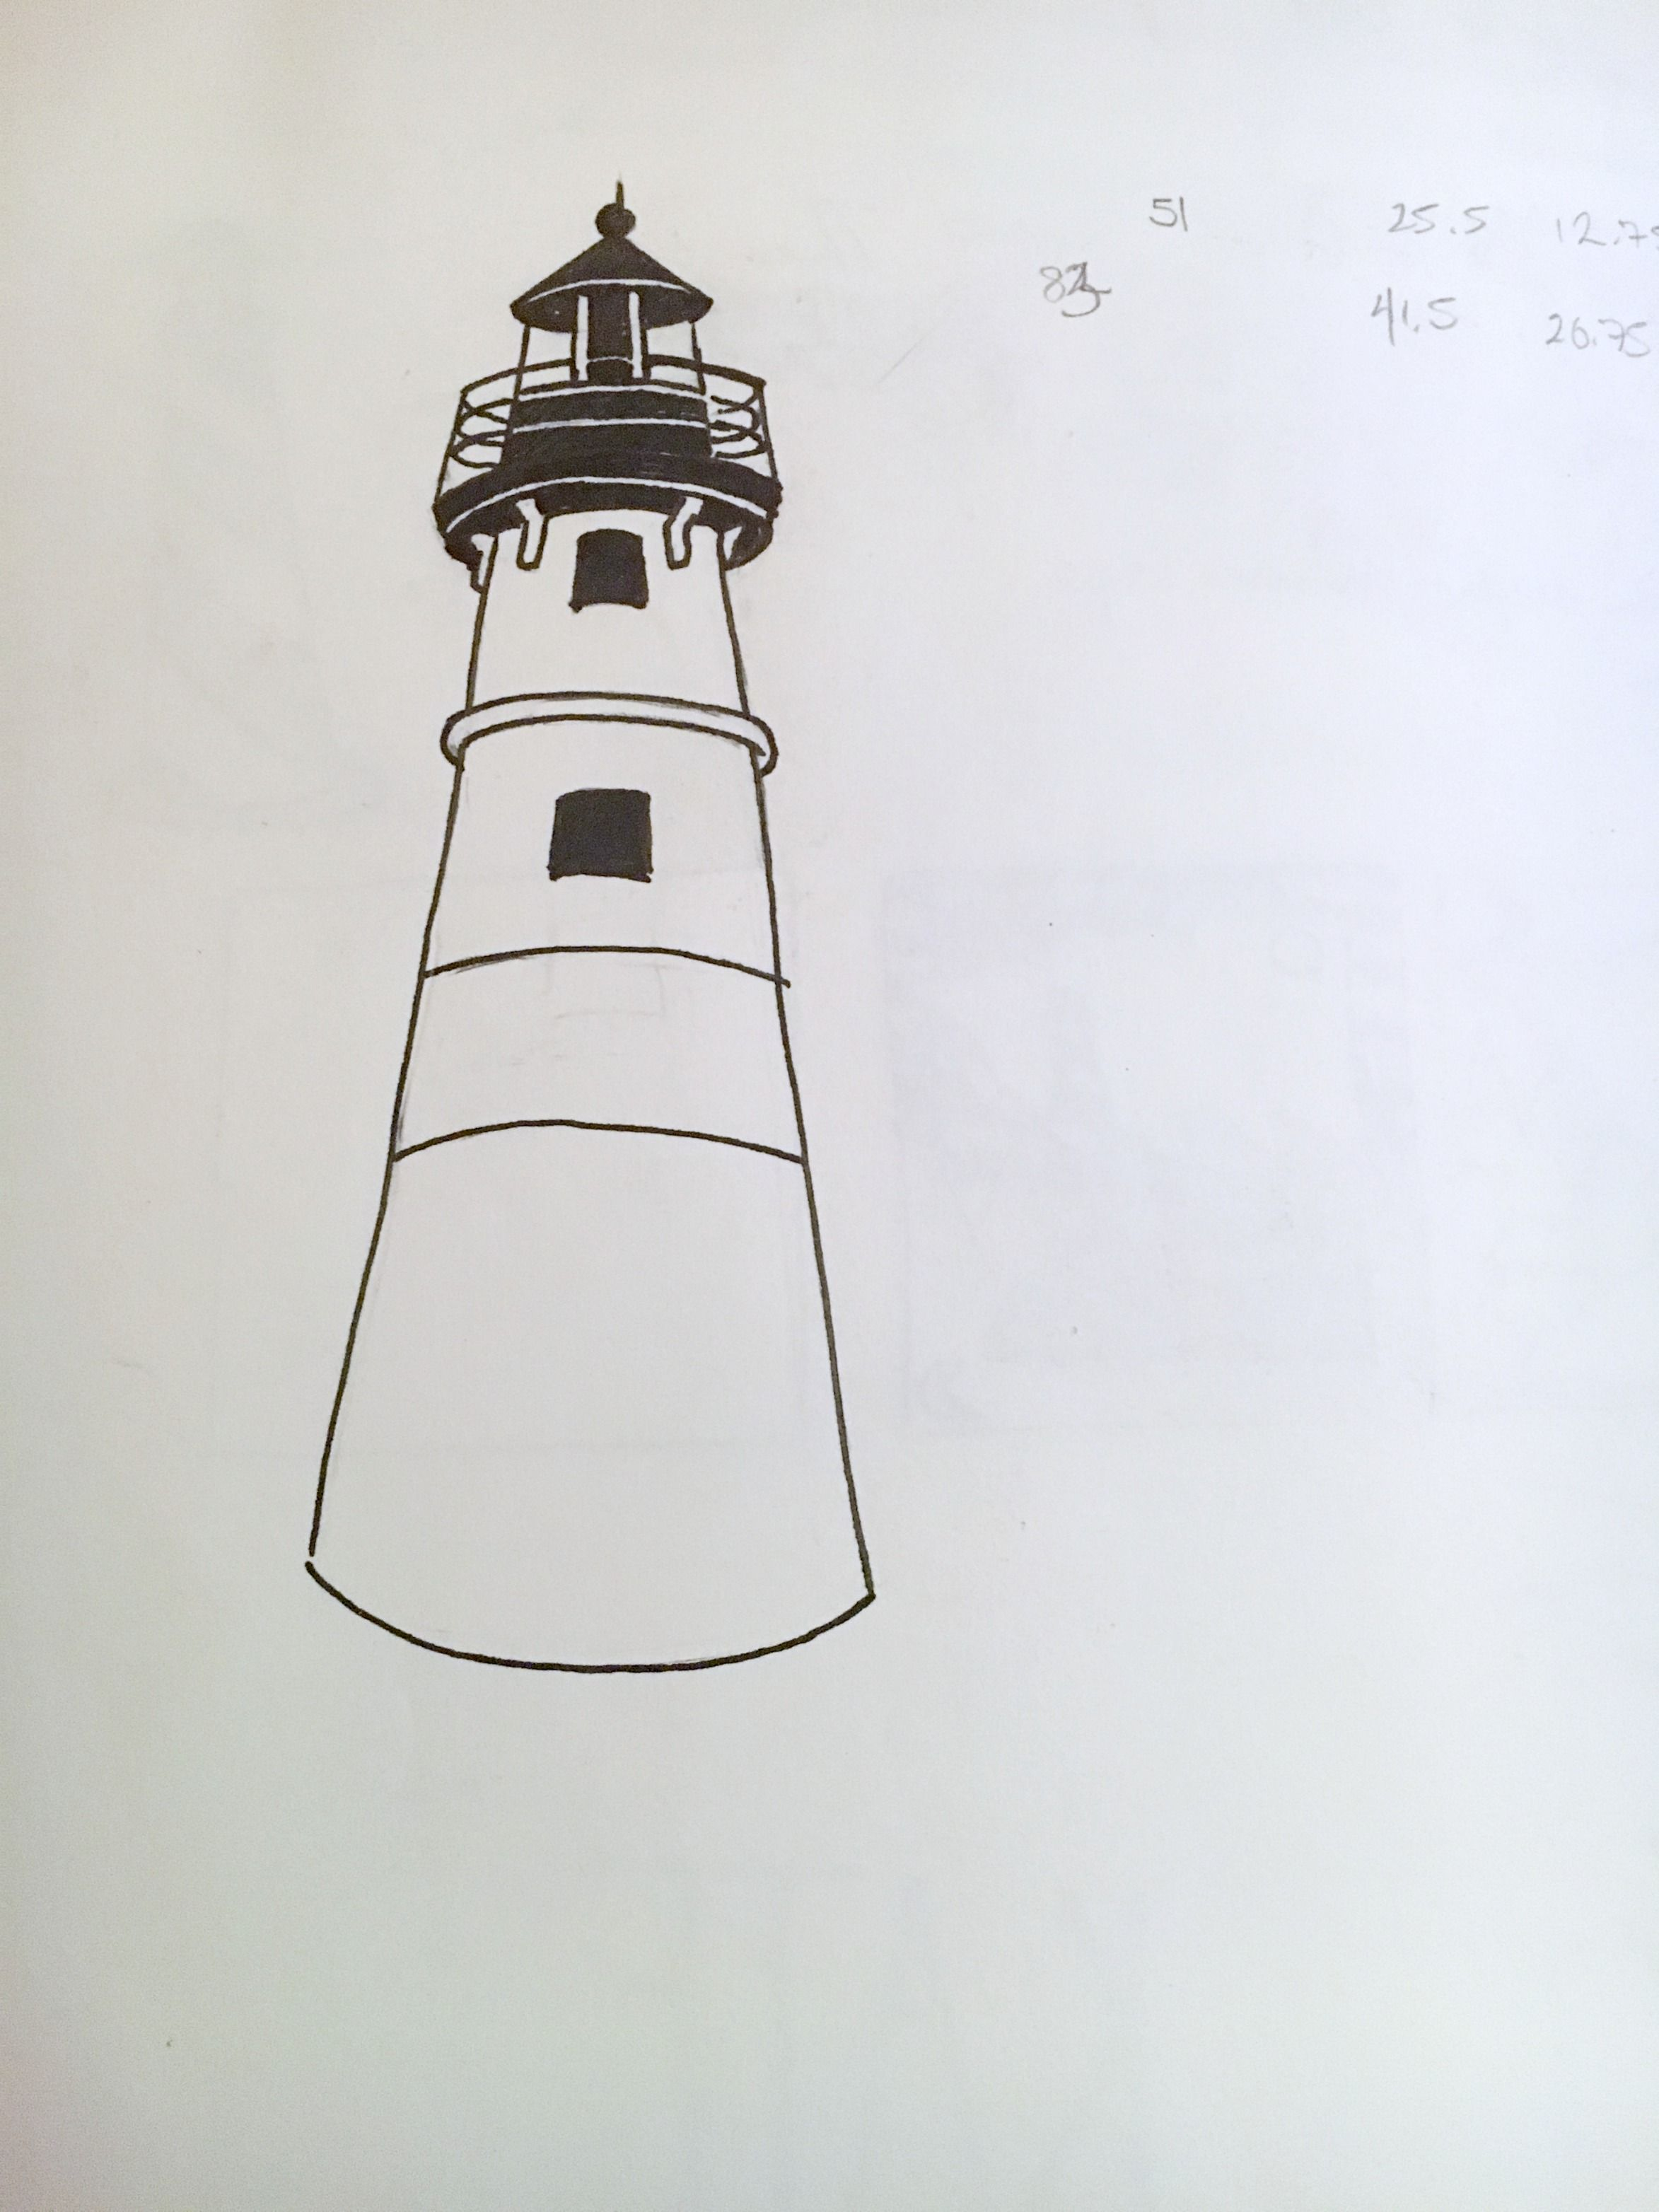 Final lighthouse design